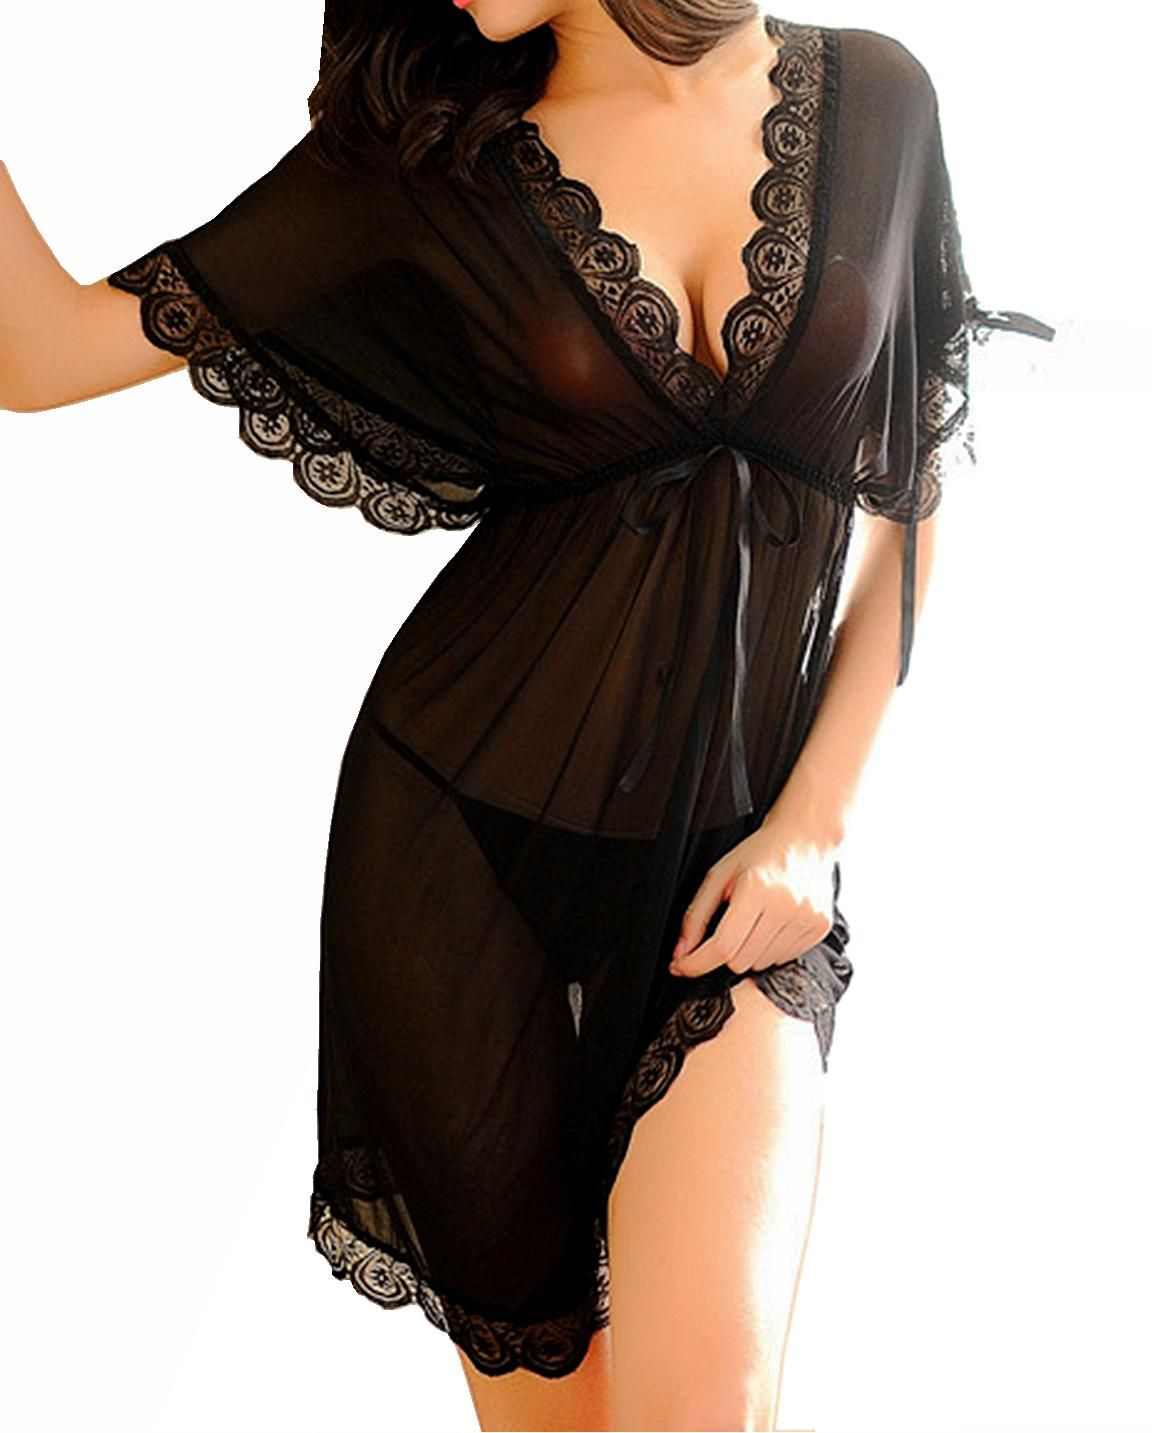 Ms demon lingerie low cut batwing sleeves mesh with